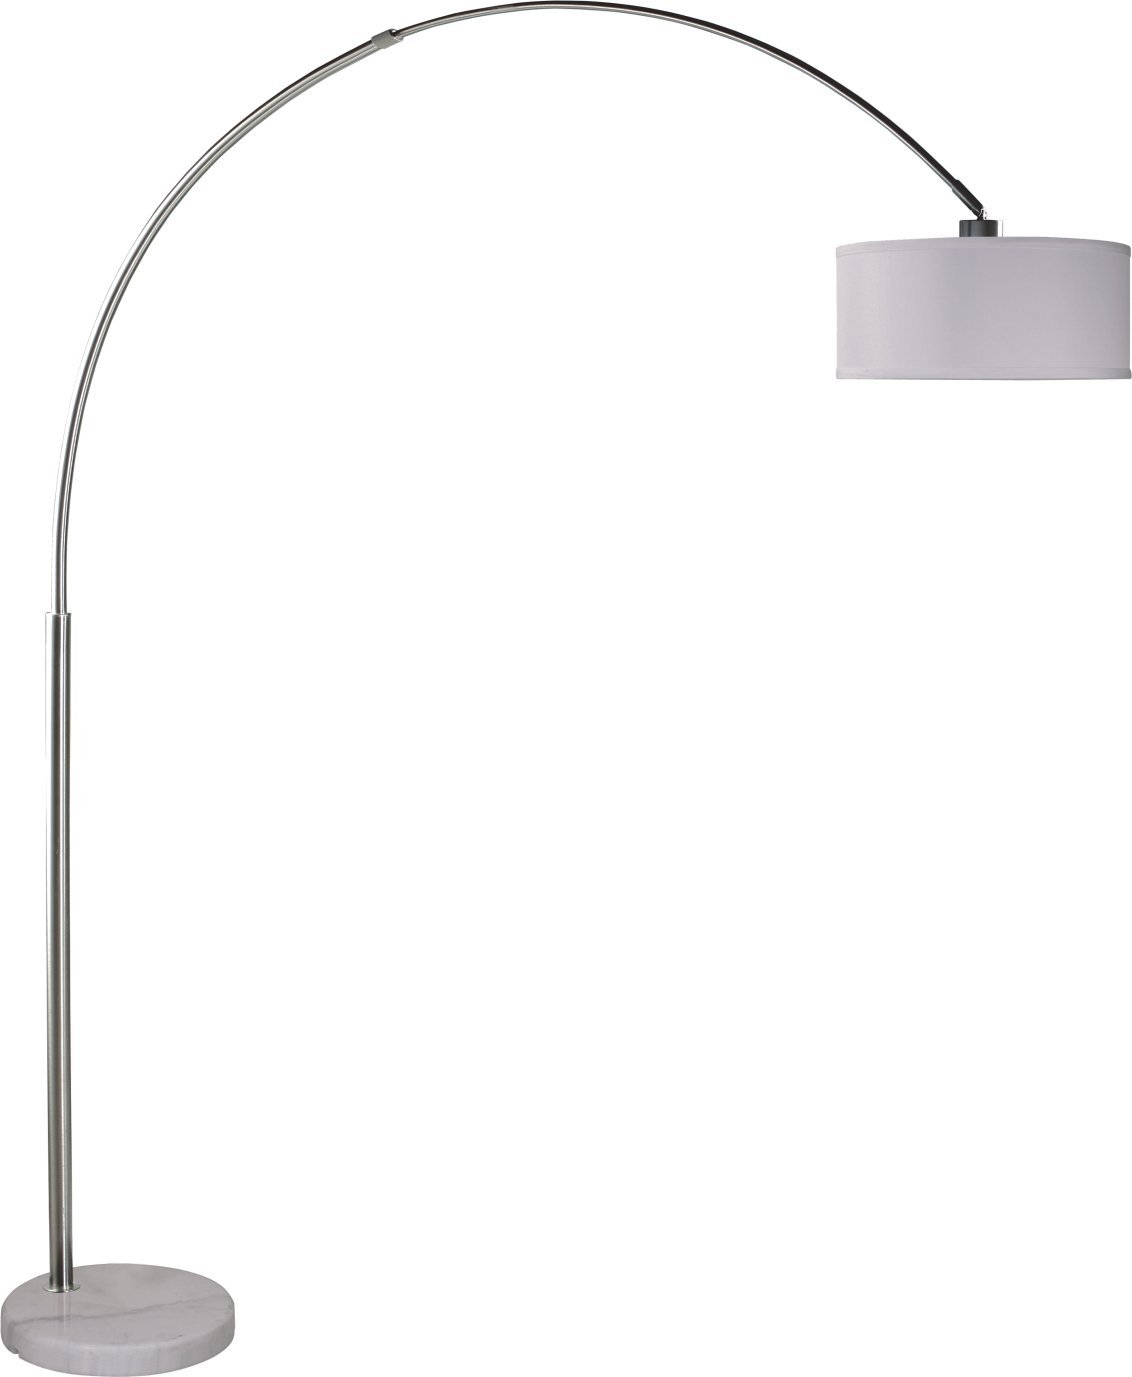 Delightful Amazon.com: Milton Greens Stars Sophia Adjustable Arc Floor Lamp With  Marble Base, 81 Inch: Home U0026 Kitchen